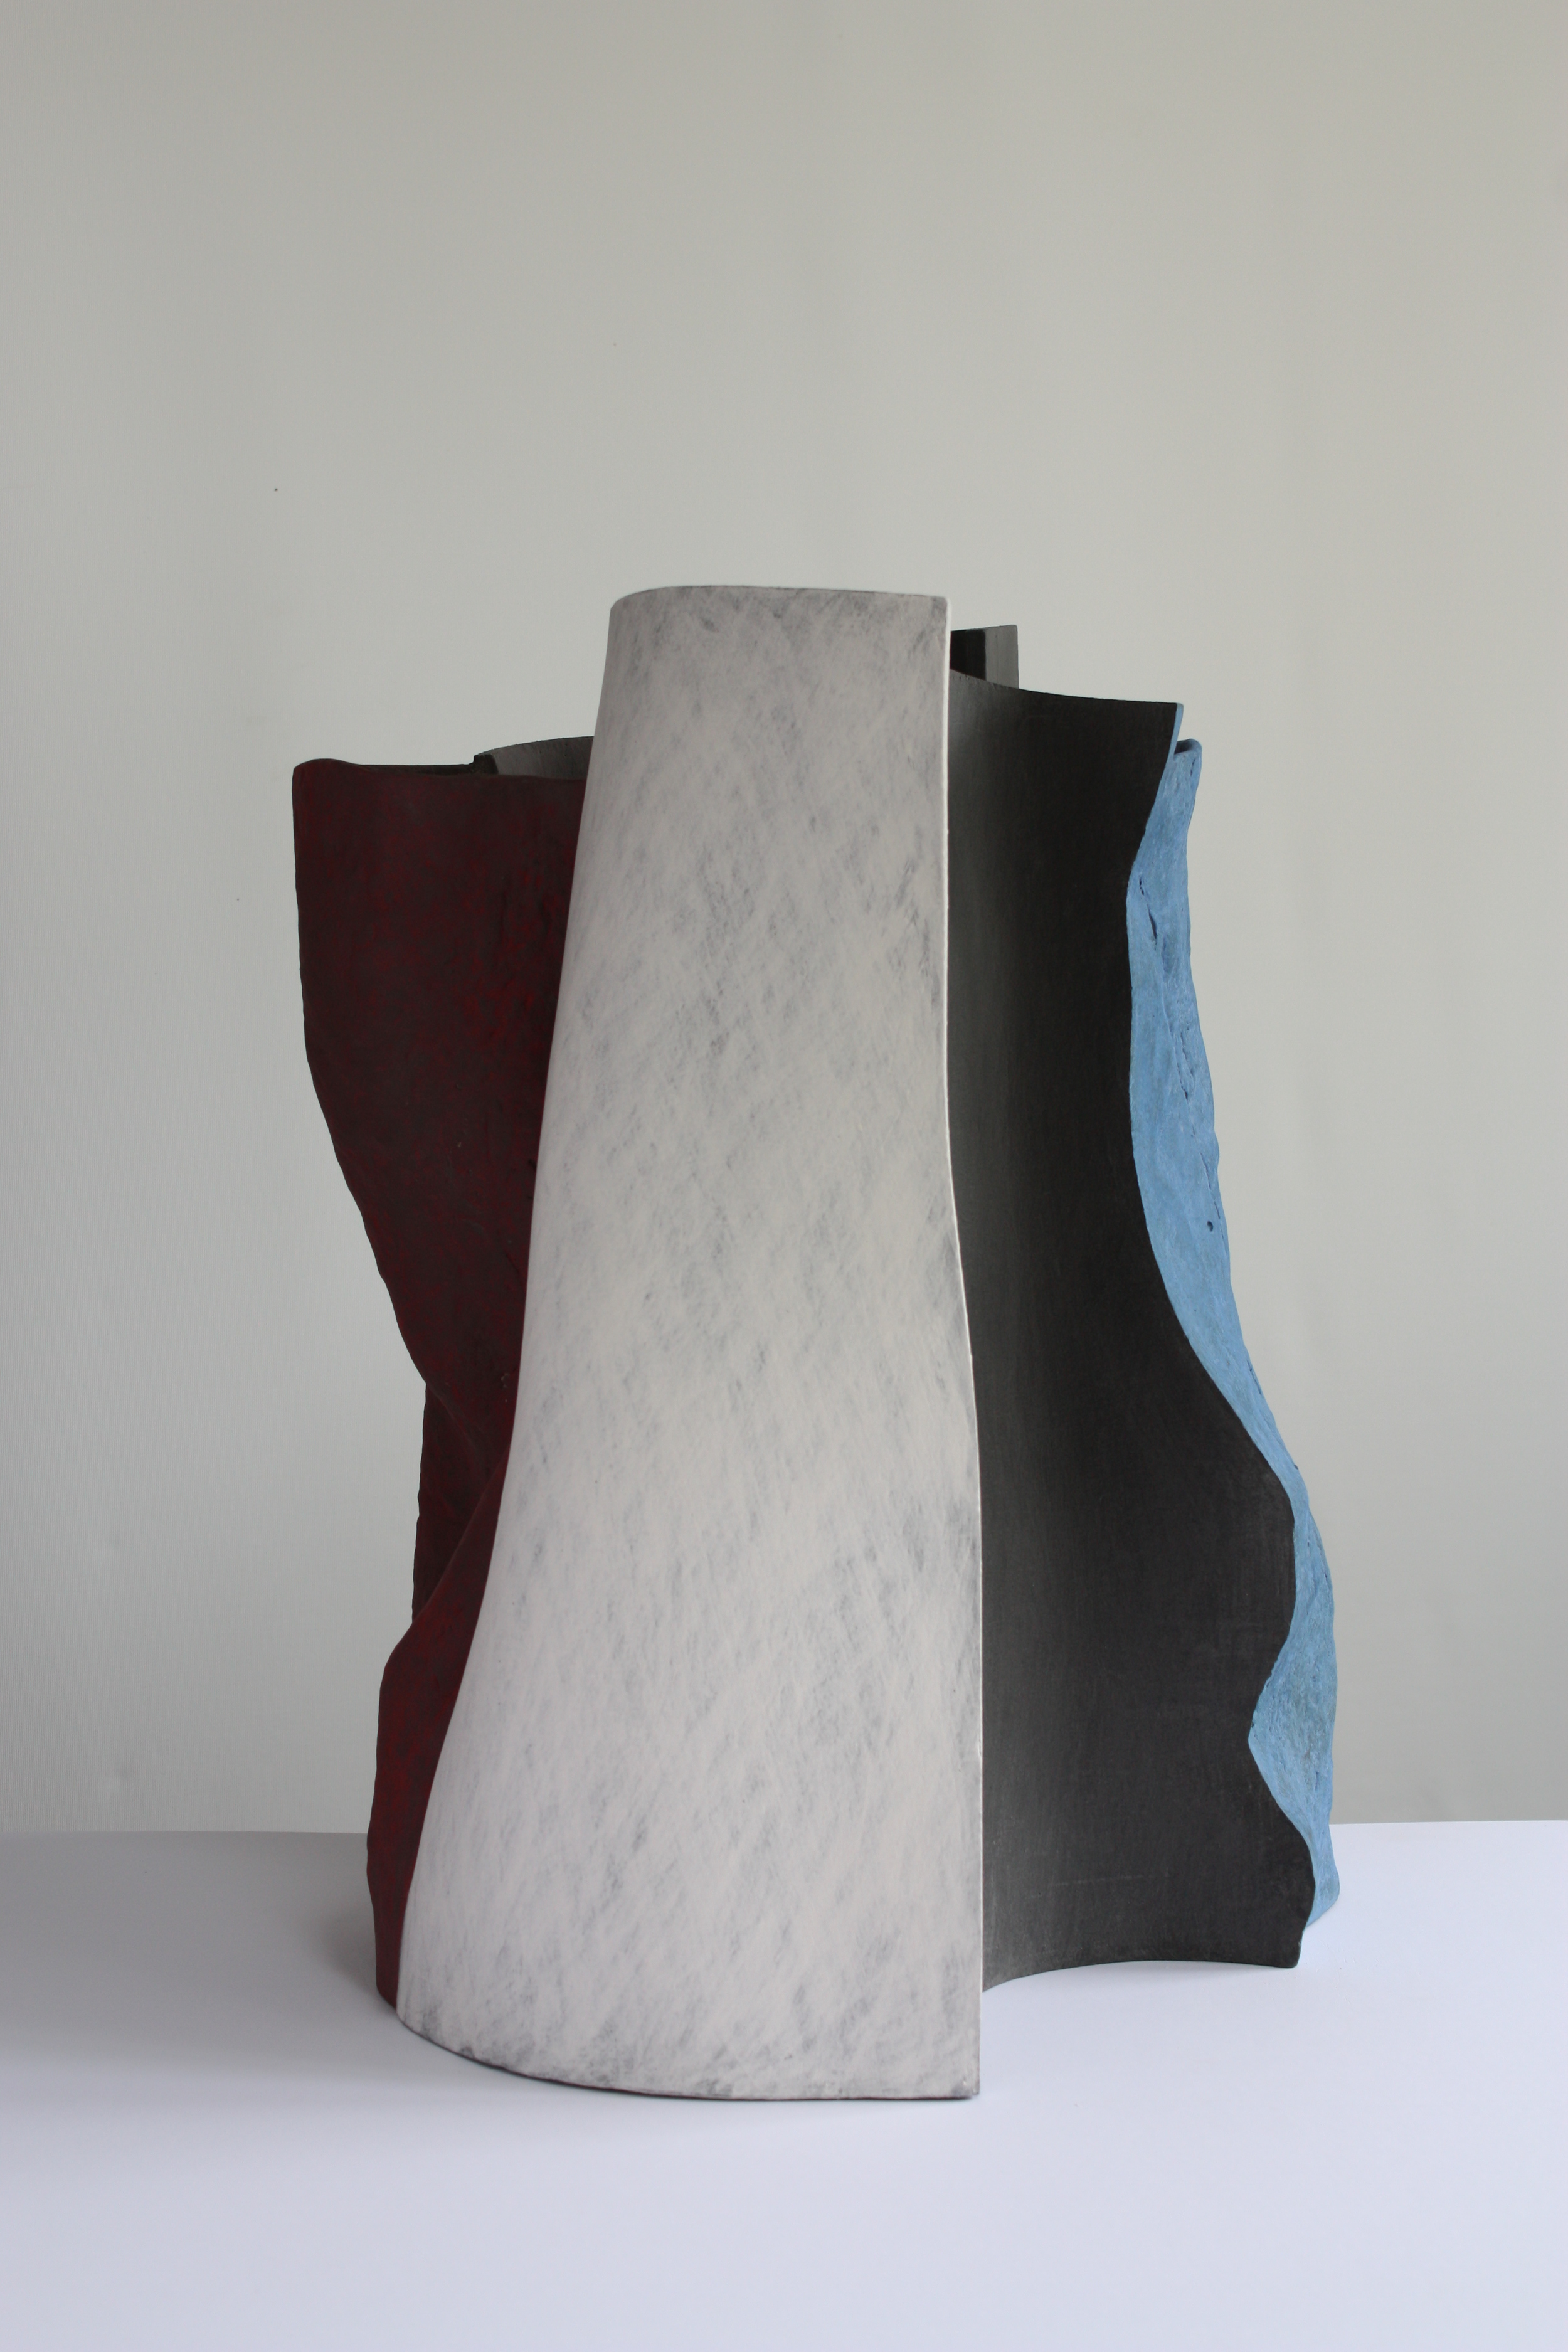 The imminent days, 2012, 48cm high